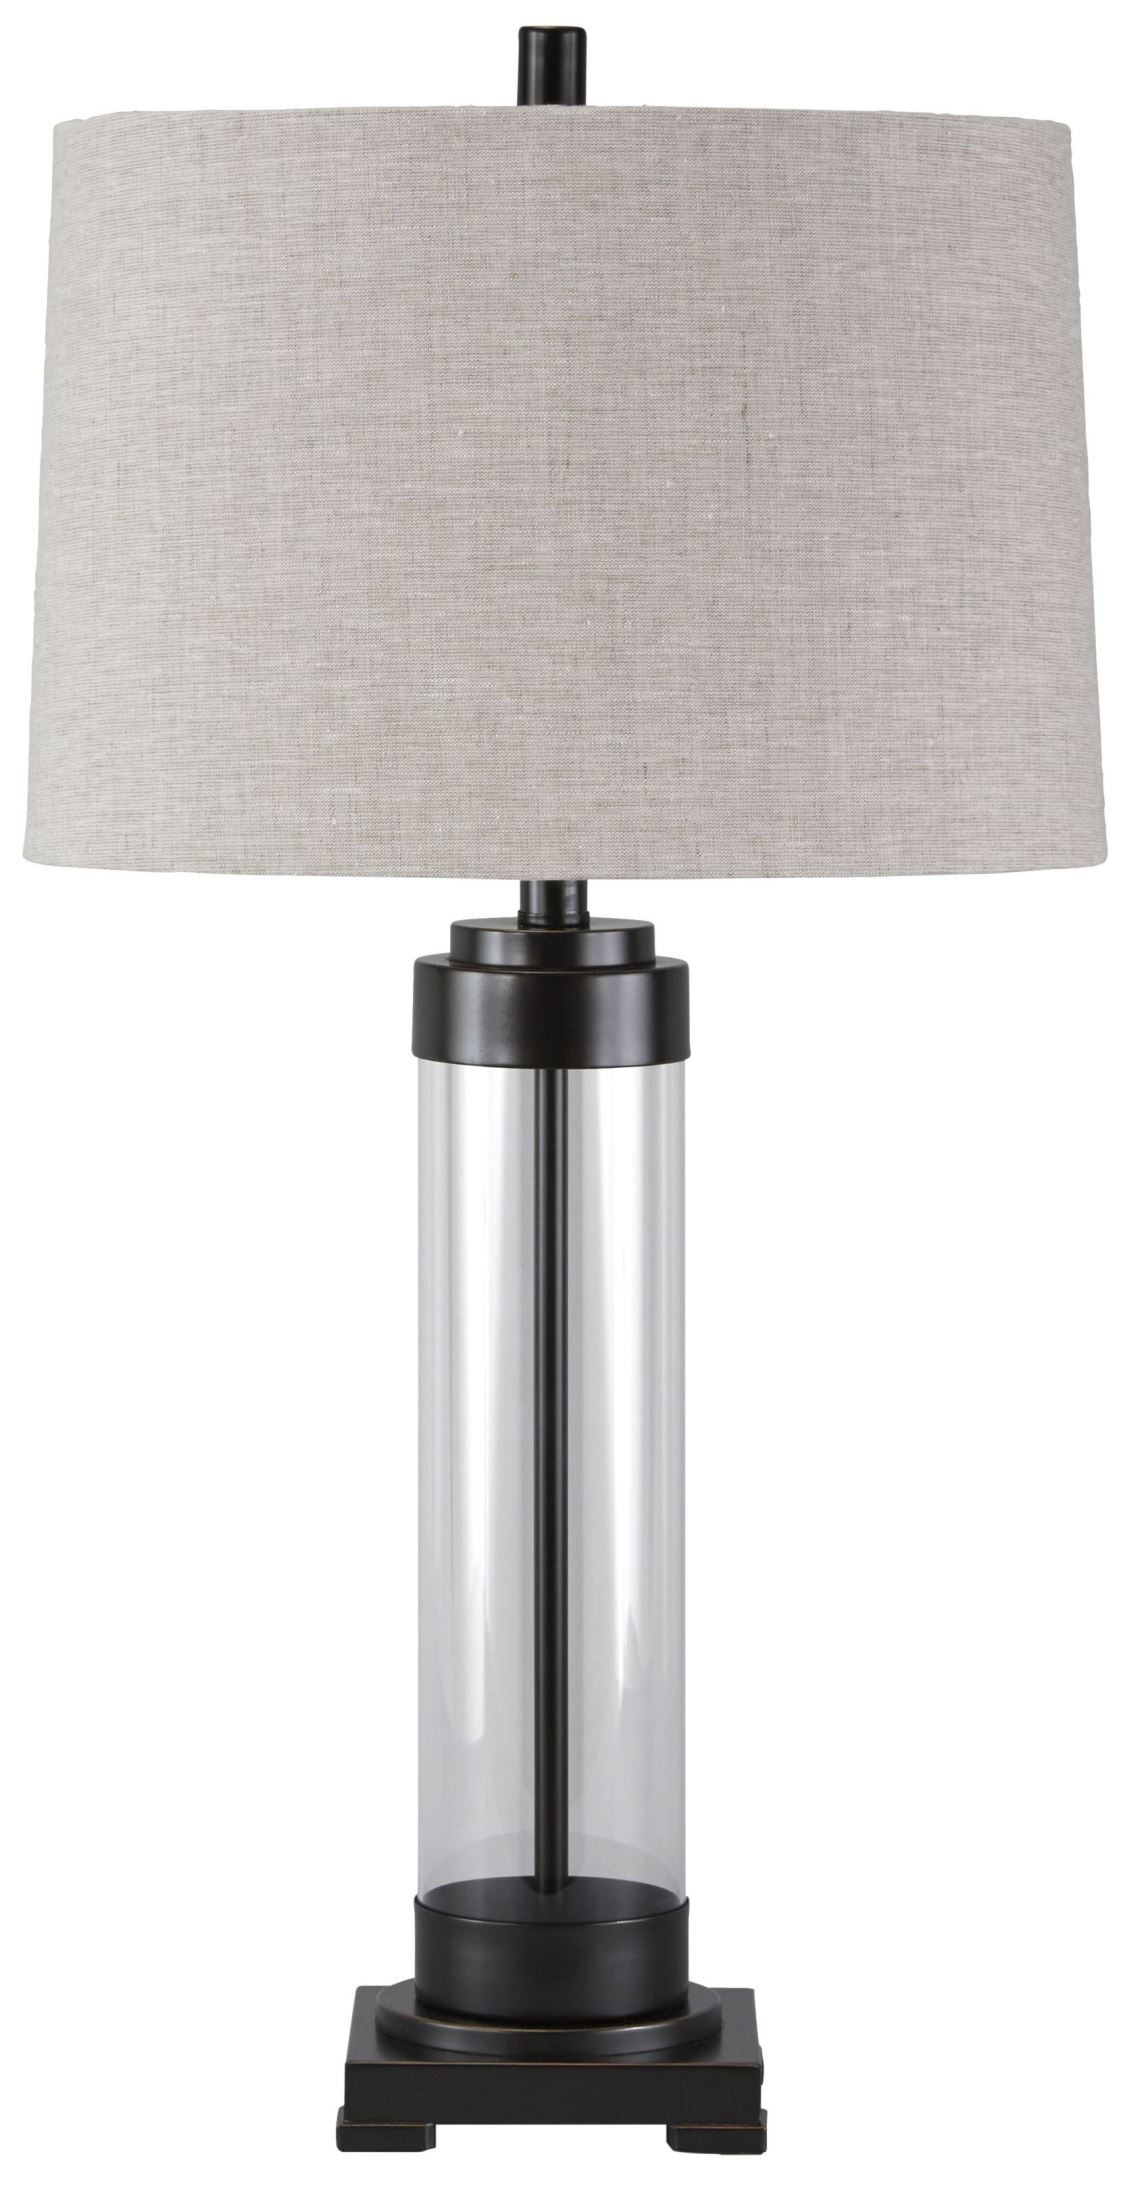 Talar Bronze Glass Table Lamp From Ashley L430164